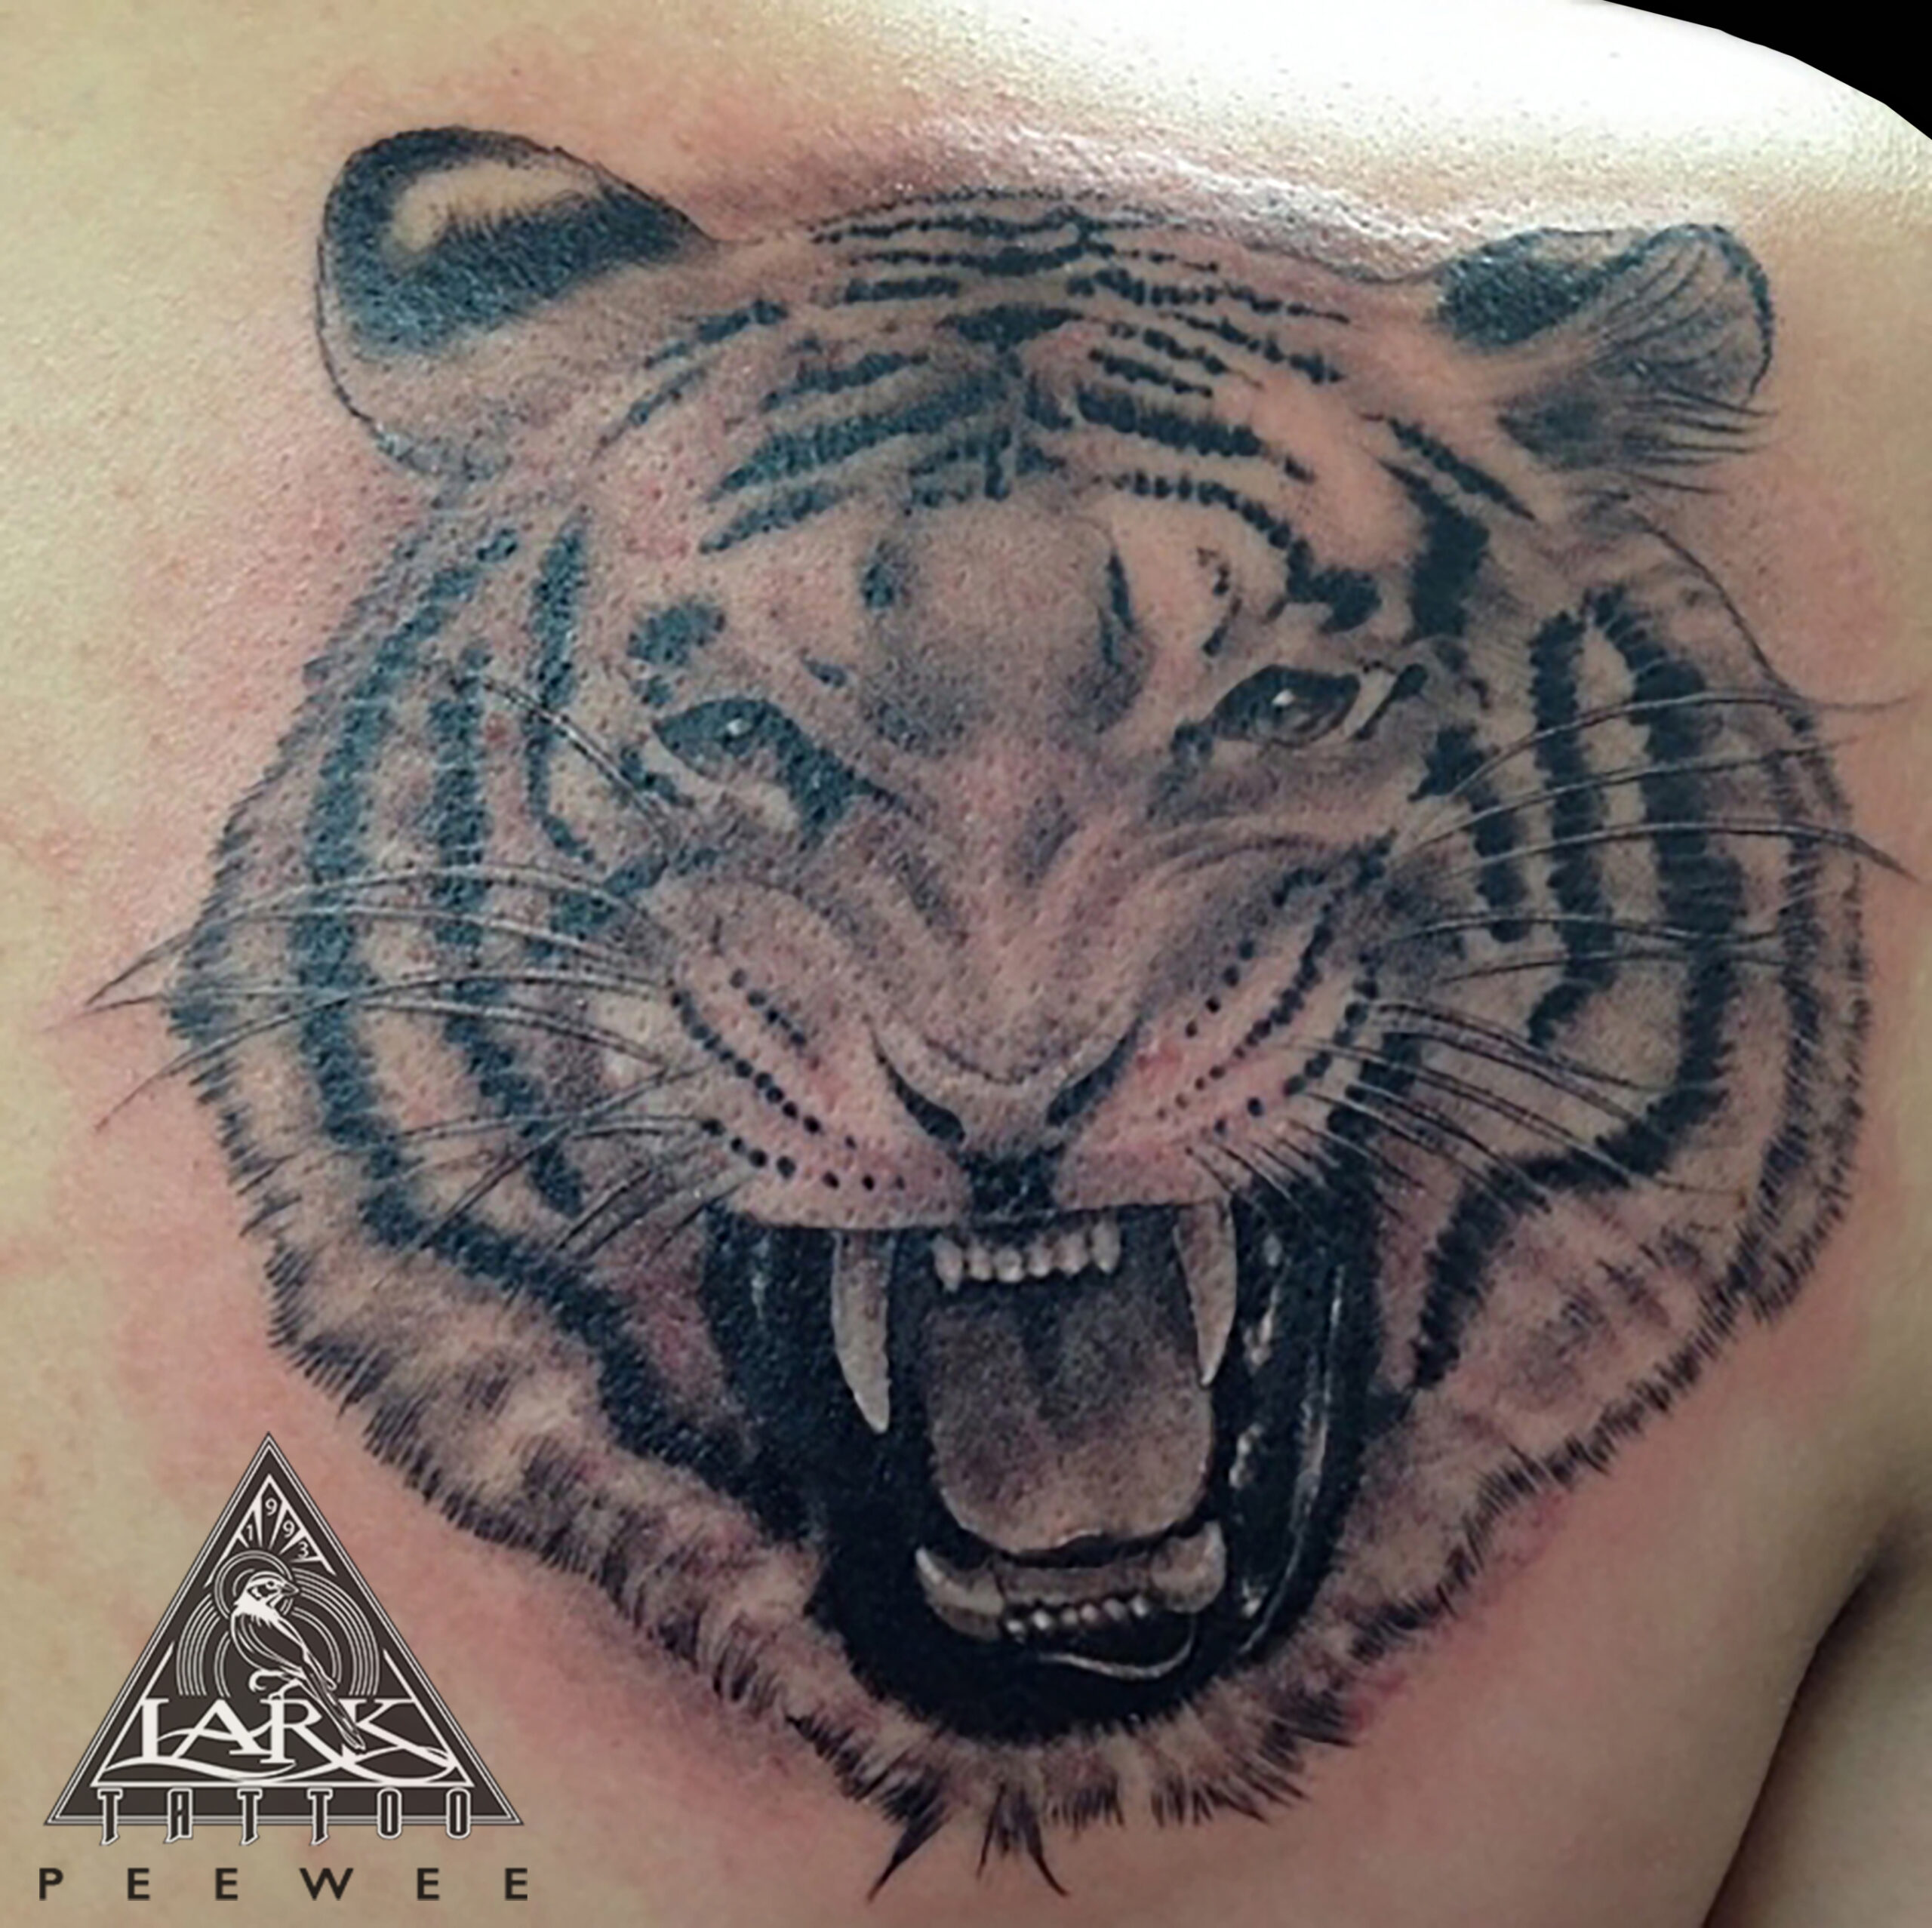 #LarkTattoo #PeeWee #PeeWeeTattoo #PeeWeeLarkTattoo #BNG #BNGTattoo #BlackAndGray #BlackAndGrayTattoo #BlackAndGrey #BlackAndGreyTattoo #Realism #RealismTattoo #Realistic #RealisticTattoo #Animal #AnimalTattoo #Tiger #TigerTattoo #Tattoo #Tattoos #TattooArtist #Tattoist #Tattooer #LongIslandTattooArtist #LongIslandTattooer #LongIslandTattoo #TattooOfTheDay #Tat #Tats #Tatts #Tatted #Inked #Ink #TattooInk #AmazingInk #AmazingTattoo #BodyArt #LarkTattooWestbury #Westbury #LongIsland #NY #NewYork #USA #Art #Tattedup #InkedUp #LarkTattoos